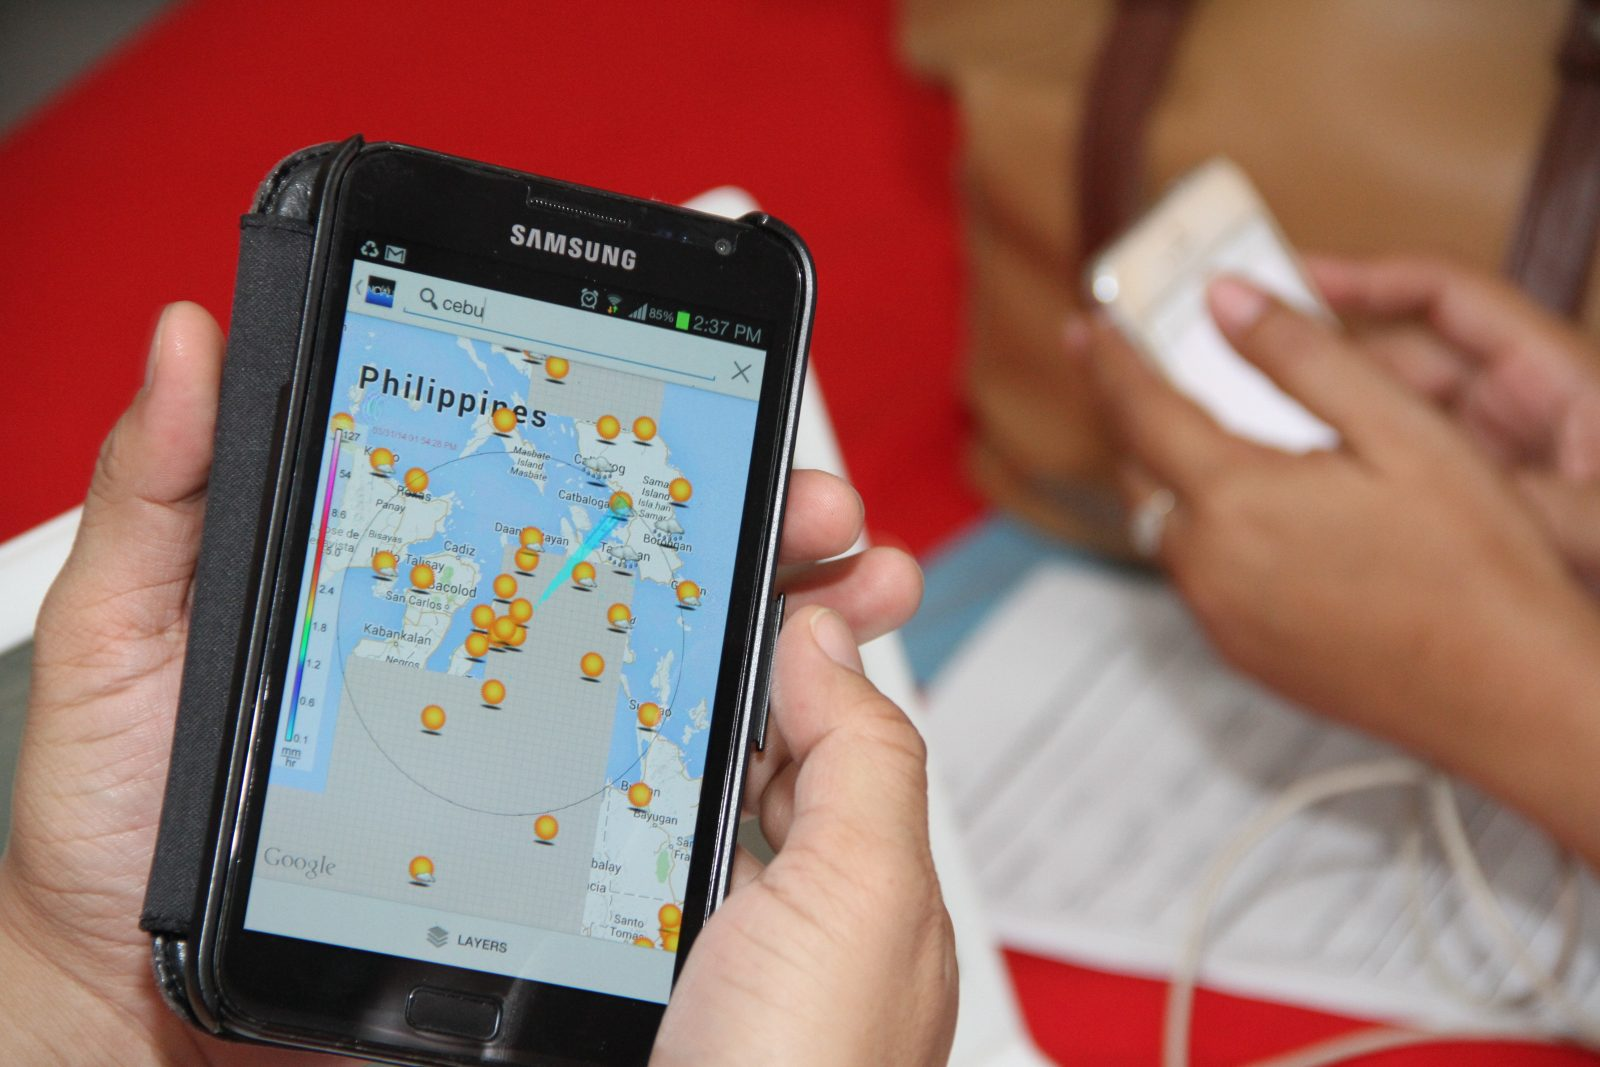 A Cebu participant checks out Project NOAH website (www.projectnoah.gov.ph) in his smartphone.